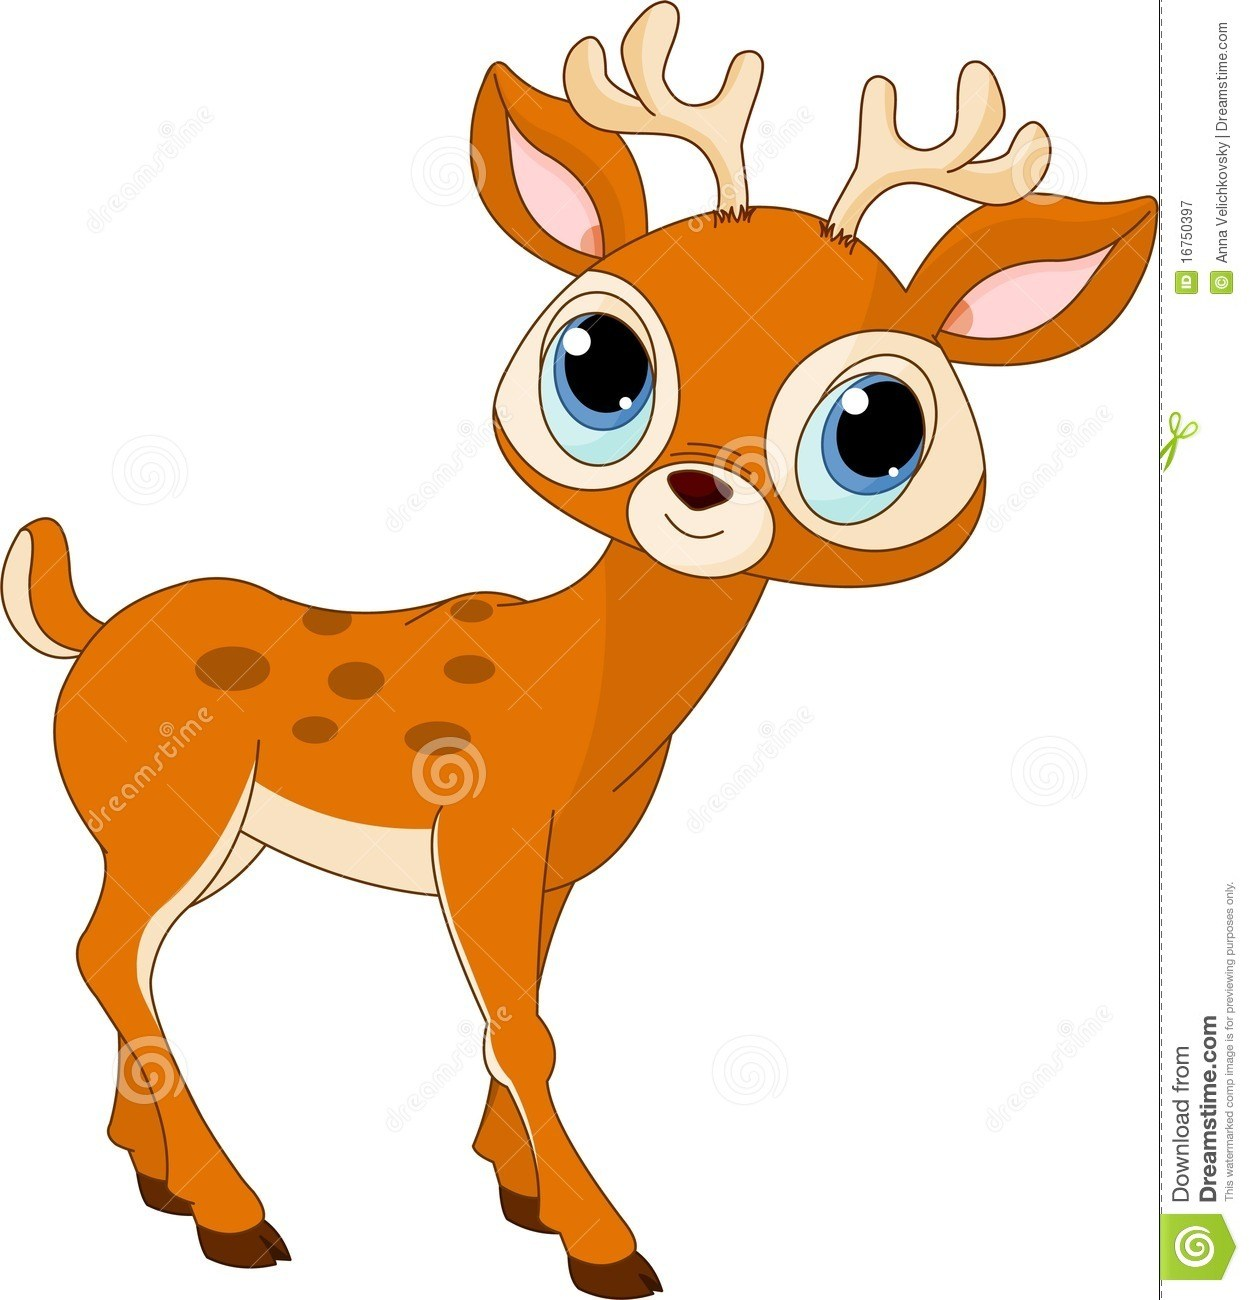 Baby deer pictures clipart royalty free download Baby deer clipart 7 » Clipart Portal royalty free download